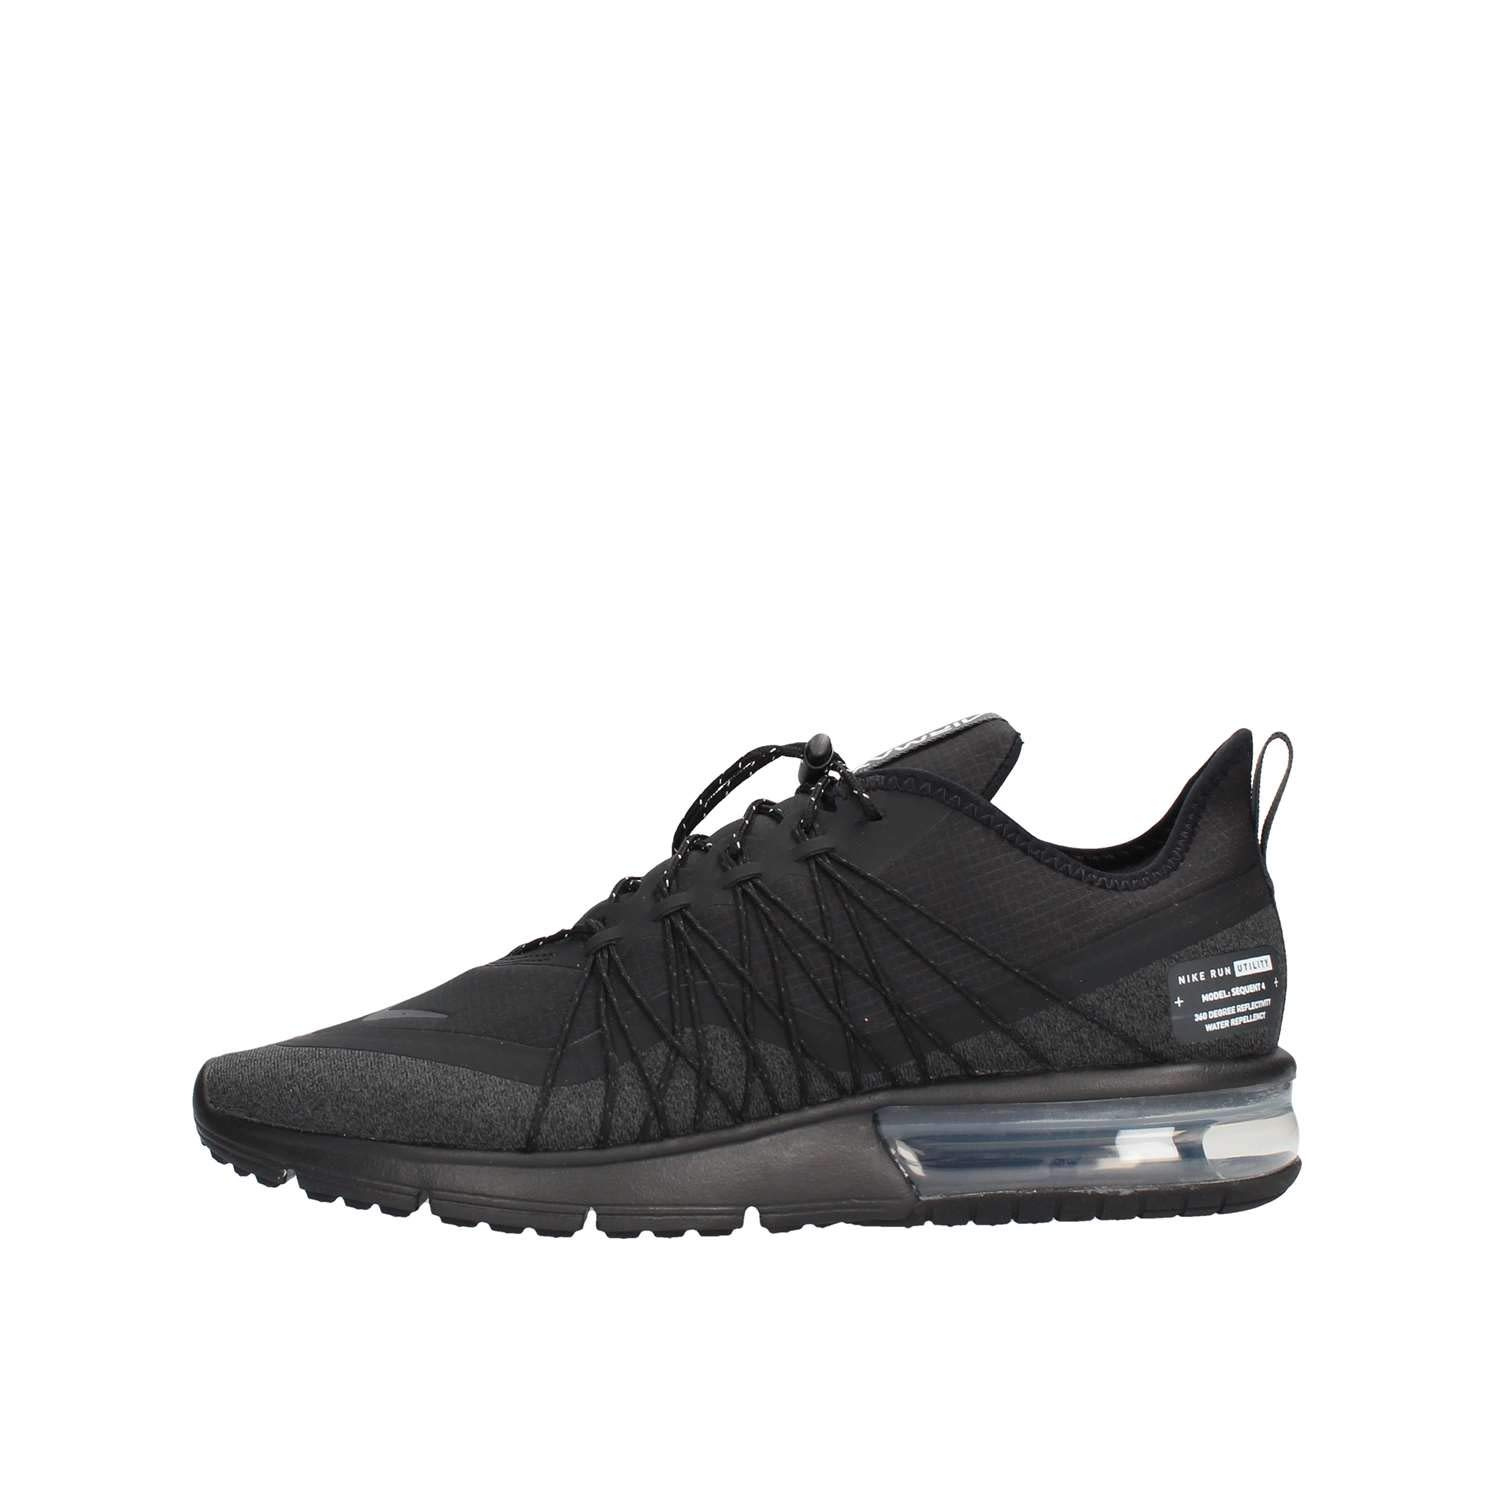 cb6f9885152 Amazon.com | Nike Men's Air Max Sequent 4 Running Shoe | Road Running